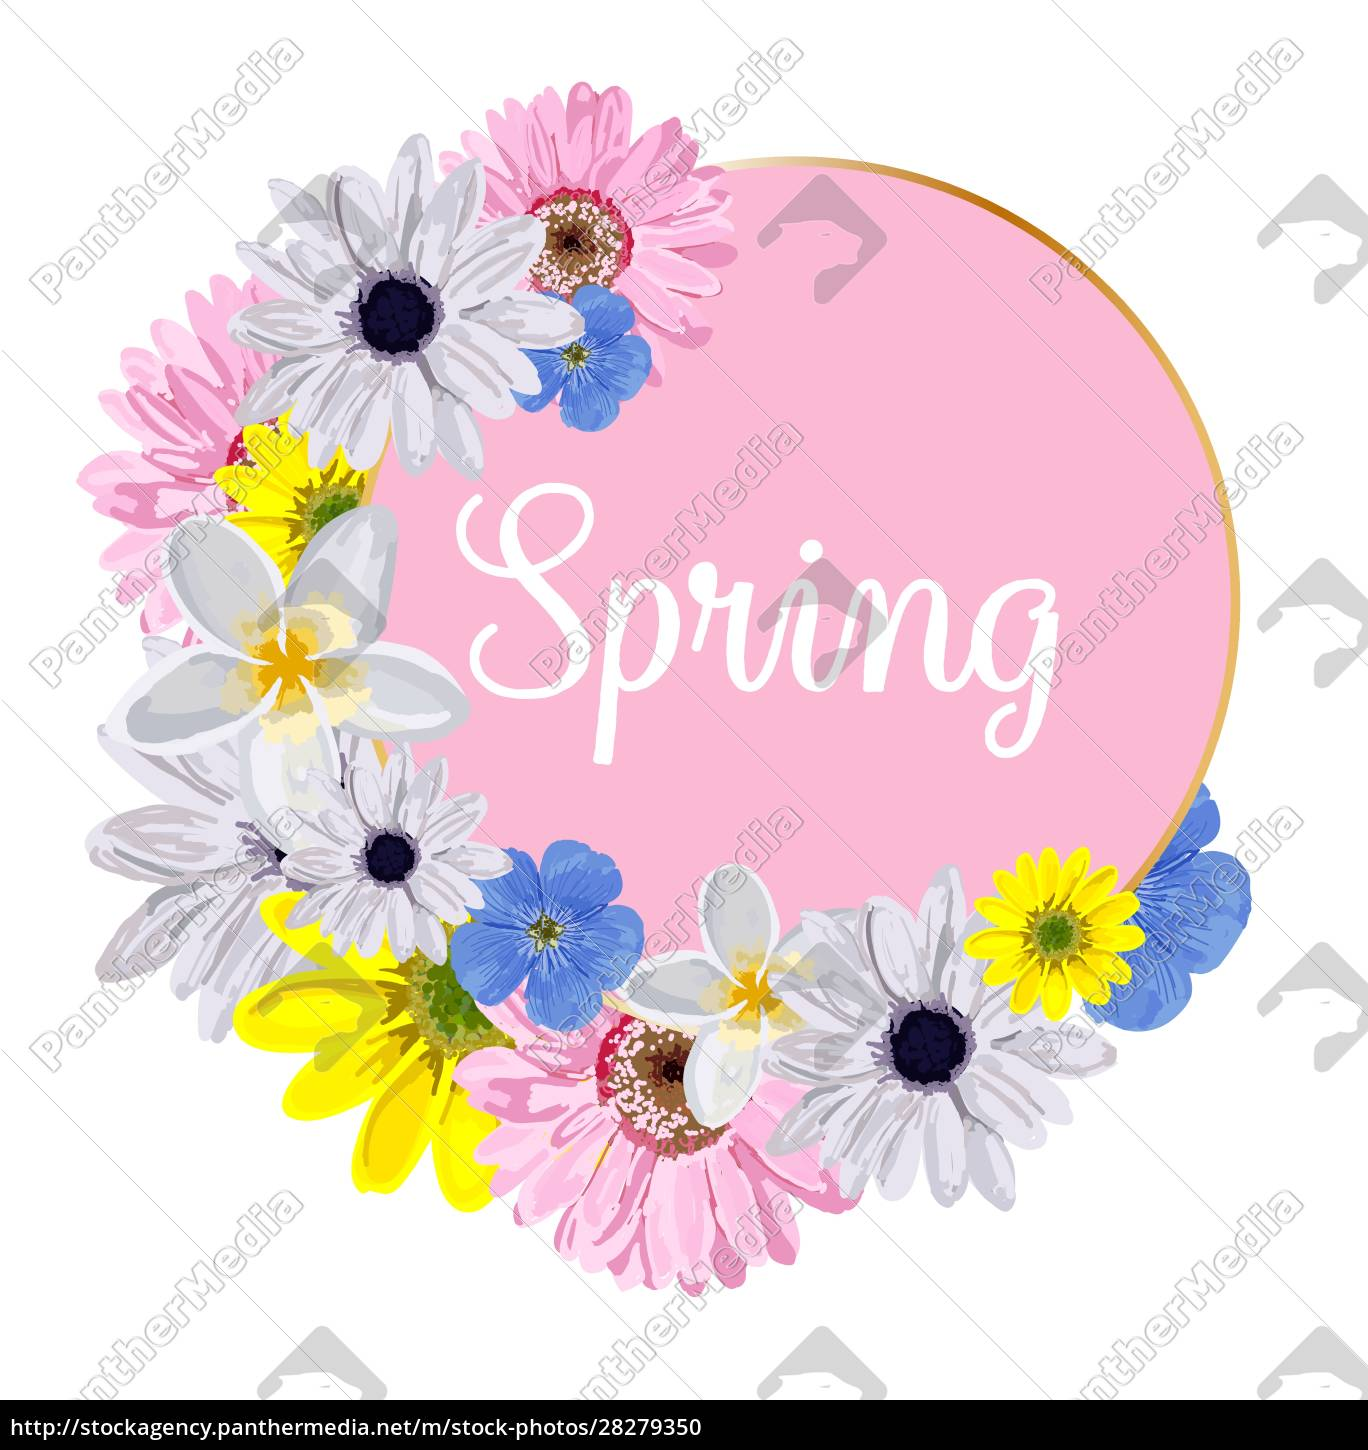 spring, hand, sketch, logo, , icon, typography - 28279350